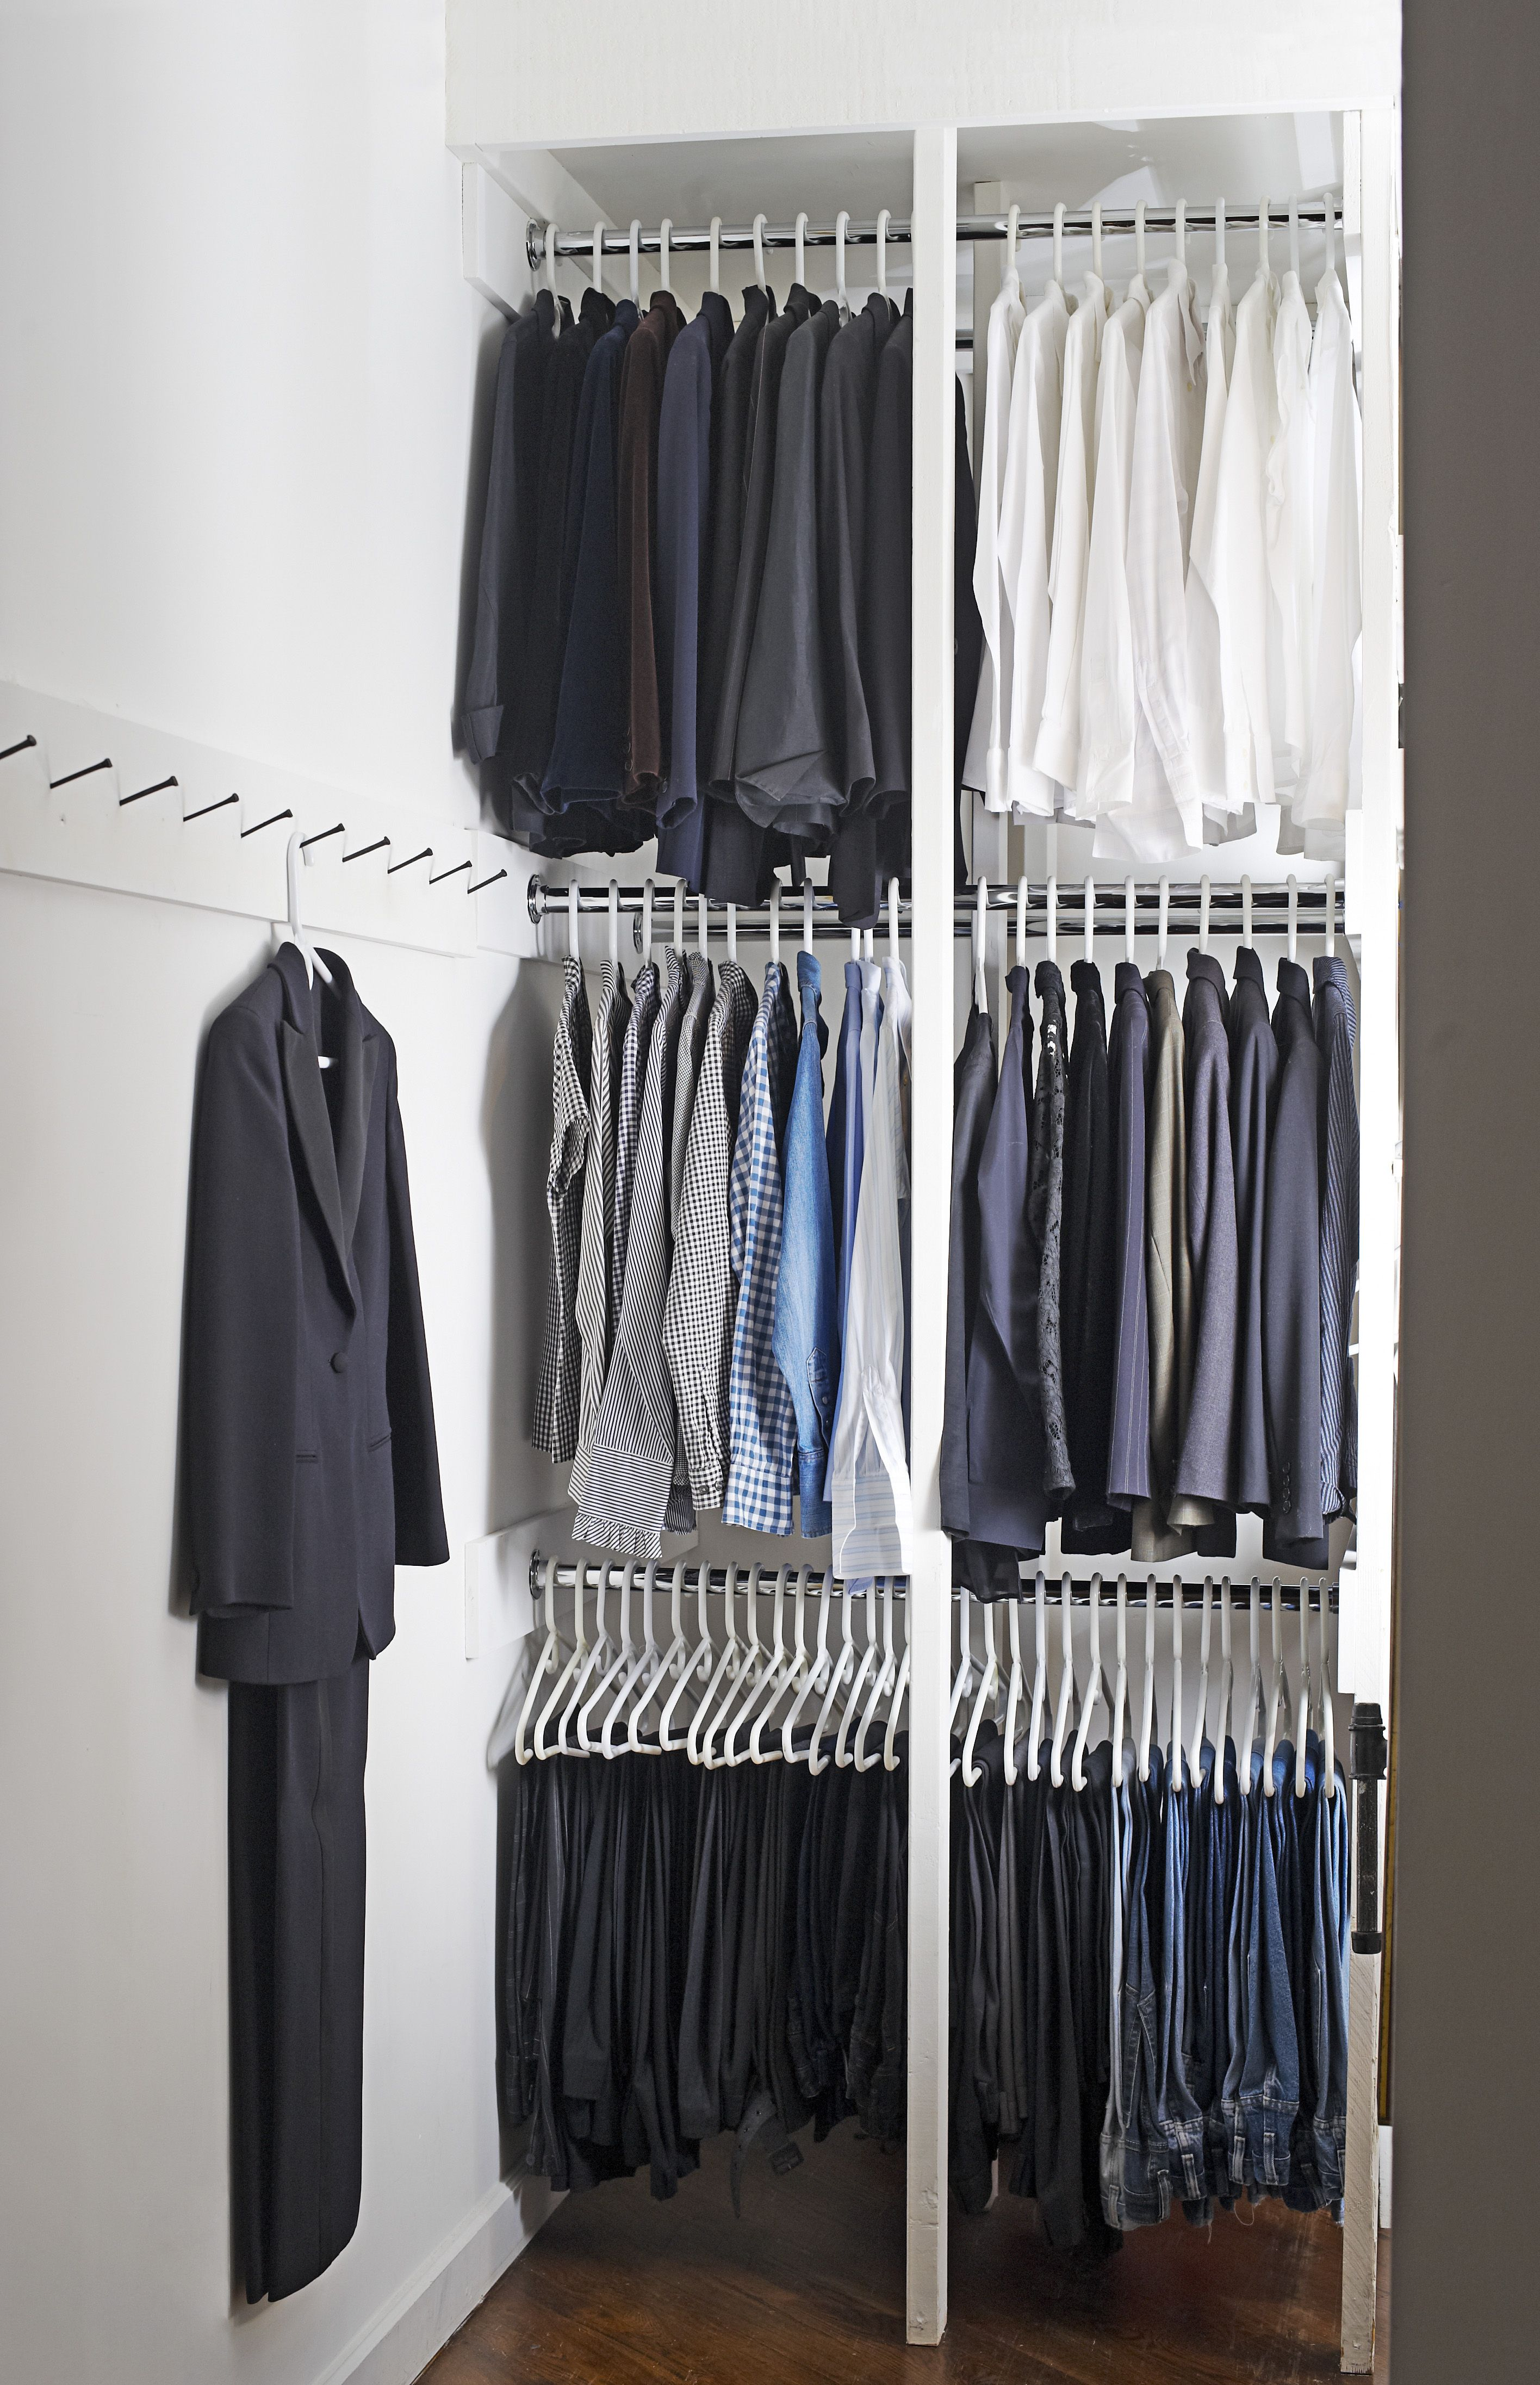 people especially wardrobe how beautiful some who those be tricky elements pin maximize with home for yet closet space ideas small i l has by pinterest c e gardening many to can on struggle stuffs bit a